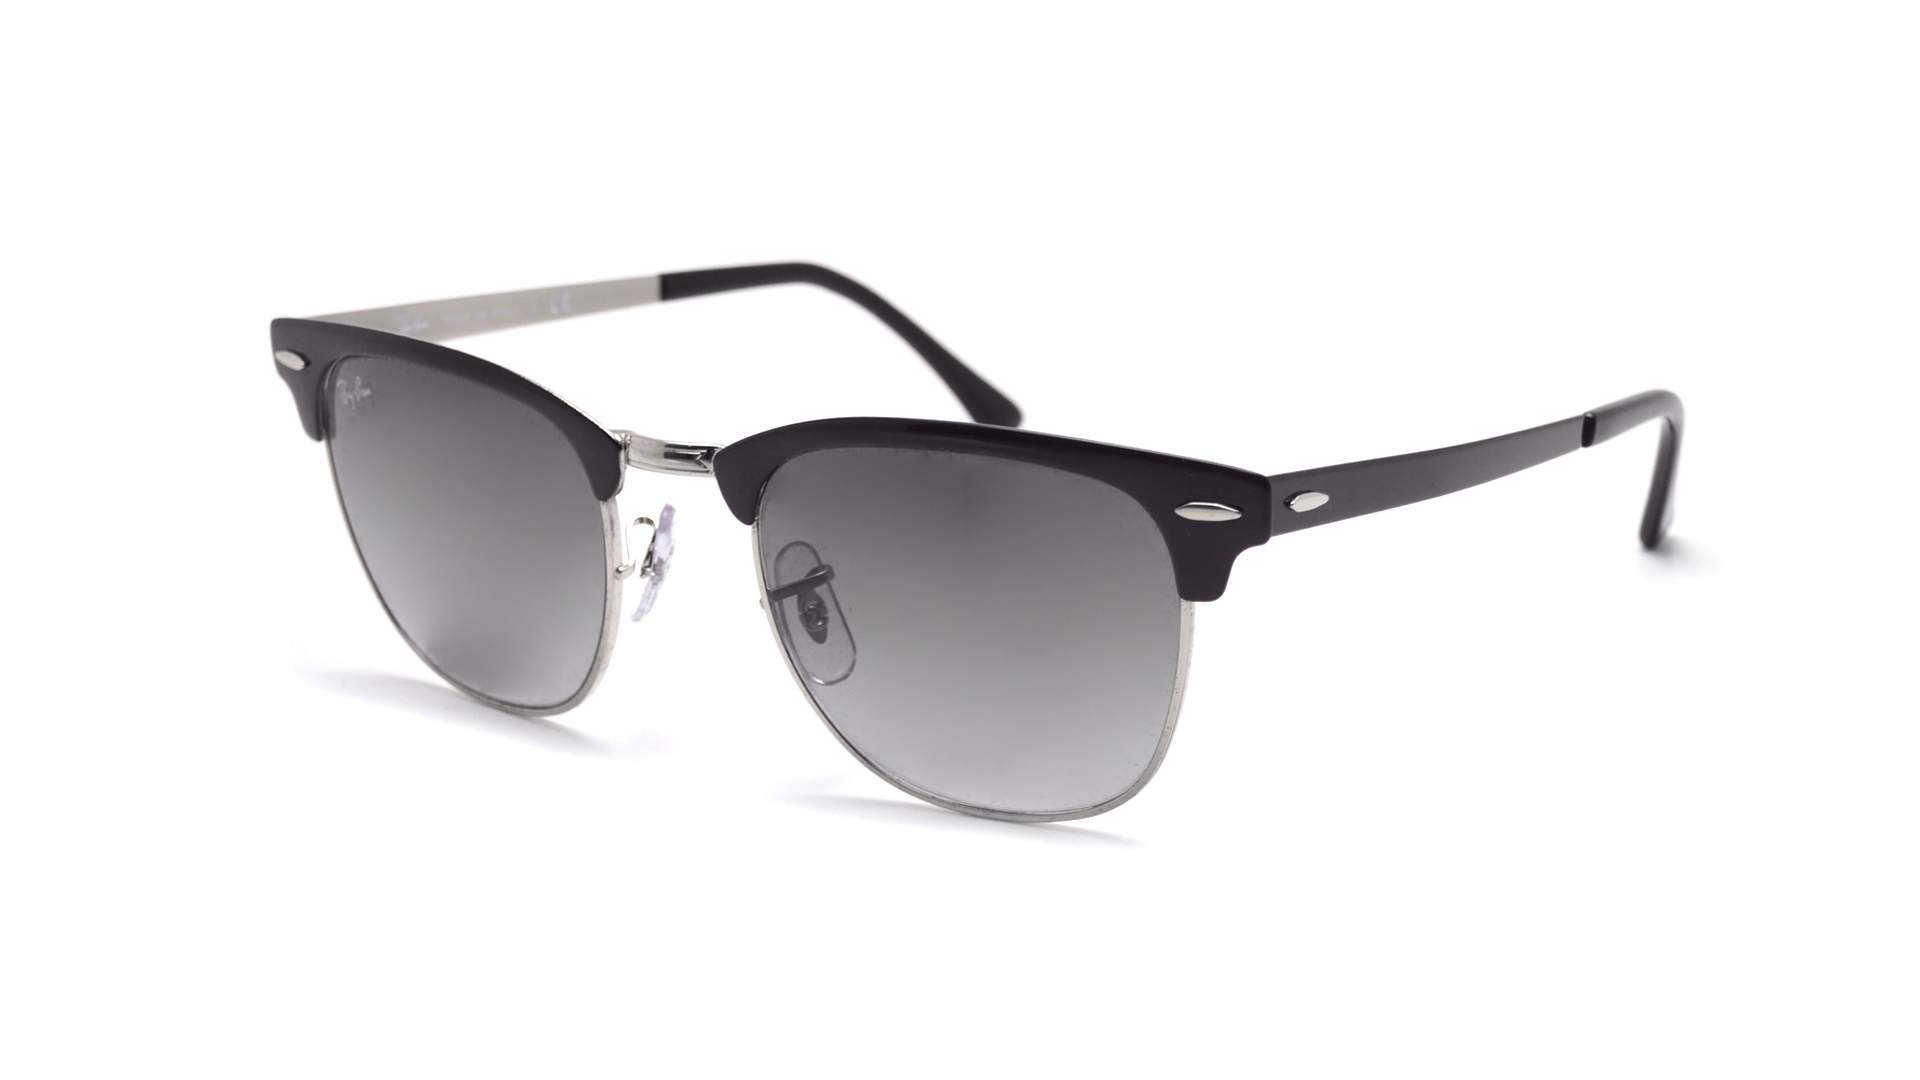 e9e7ca7d62 Sunglasses Ray-Ban Clubmaster Metal Black RB3716 9004/71 51-21 Medium  Gradient